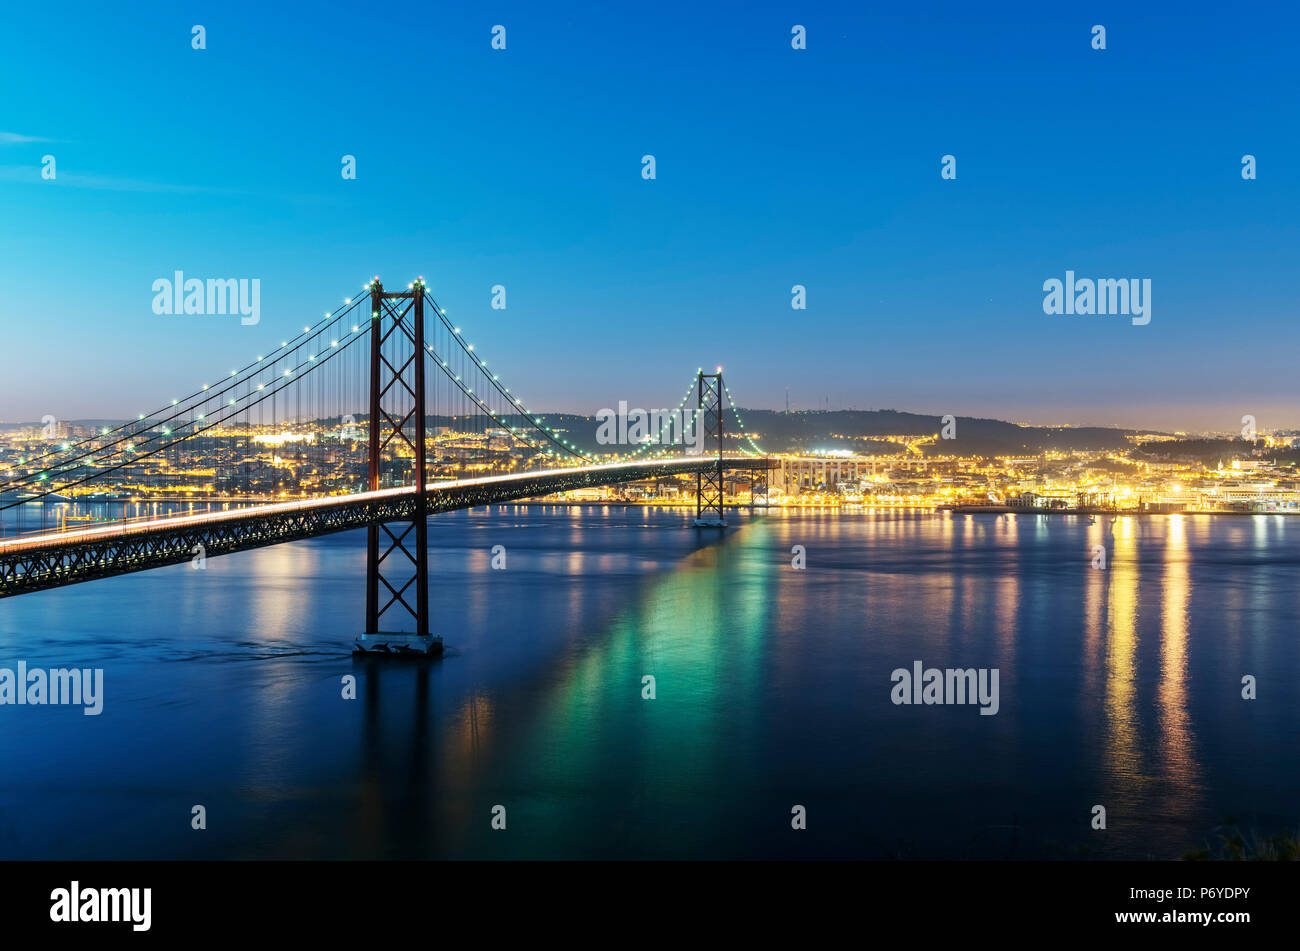 25th of April Bridge over the Tagus river (Tejo river) and Lisbon at twilight. Portugal - Stock Image